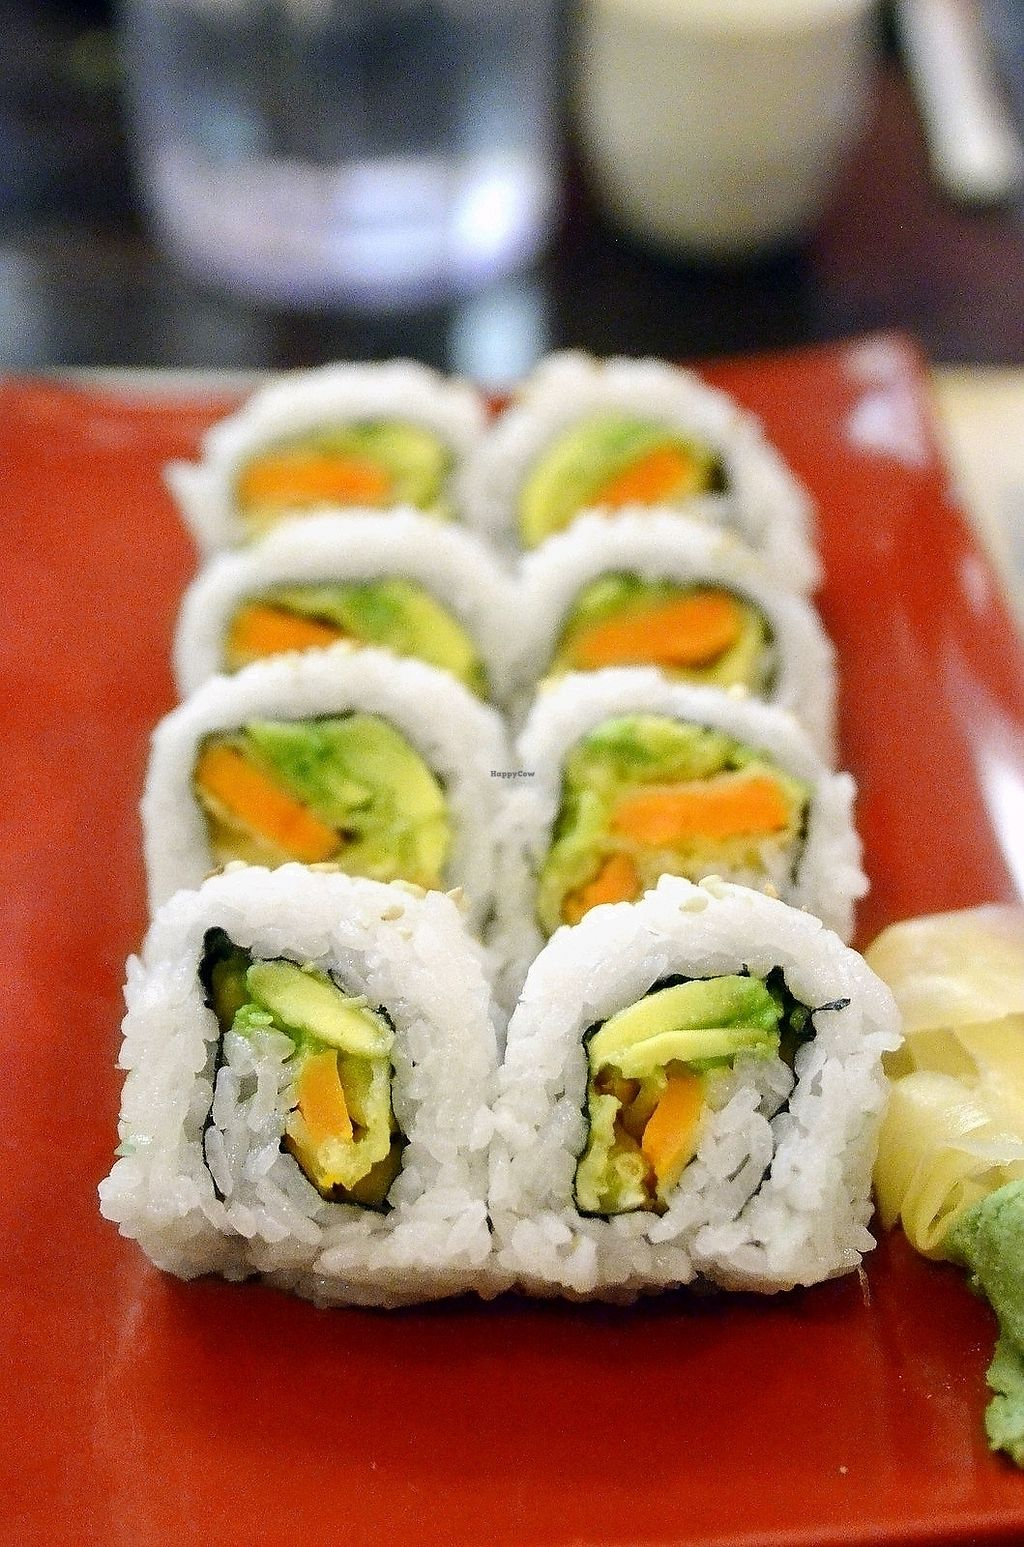 """Photo of Sushi 2  by <a href=""""/members/profile/KellyBone"""">KellyBone</a> <br/>Vegan Shauna  <br/> January 28, 2018  - <a href='/contact/abuse/image/96188/351694'>Report</a>"""